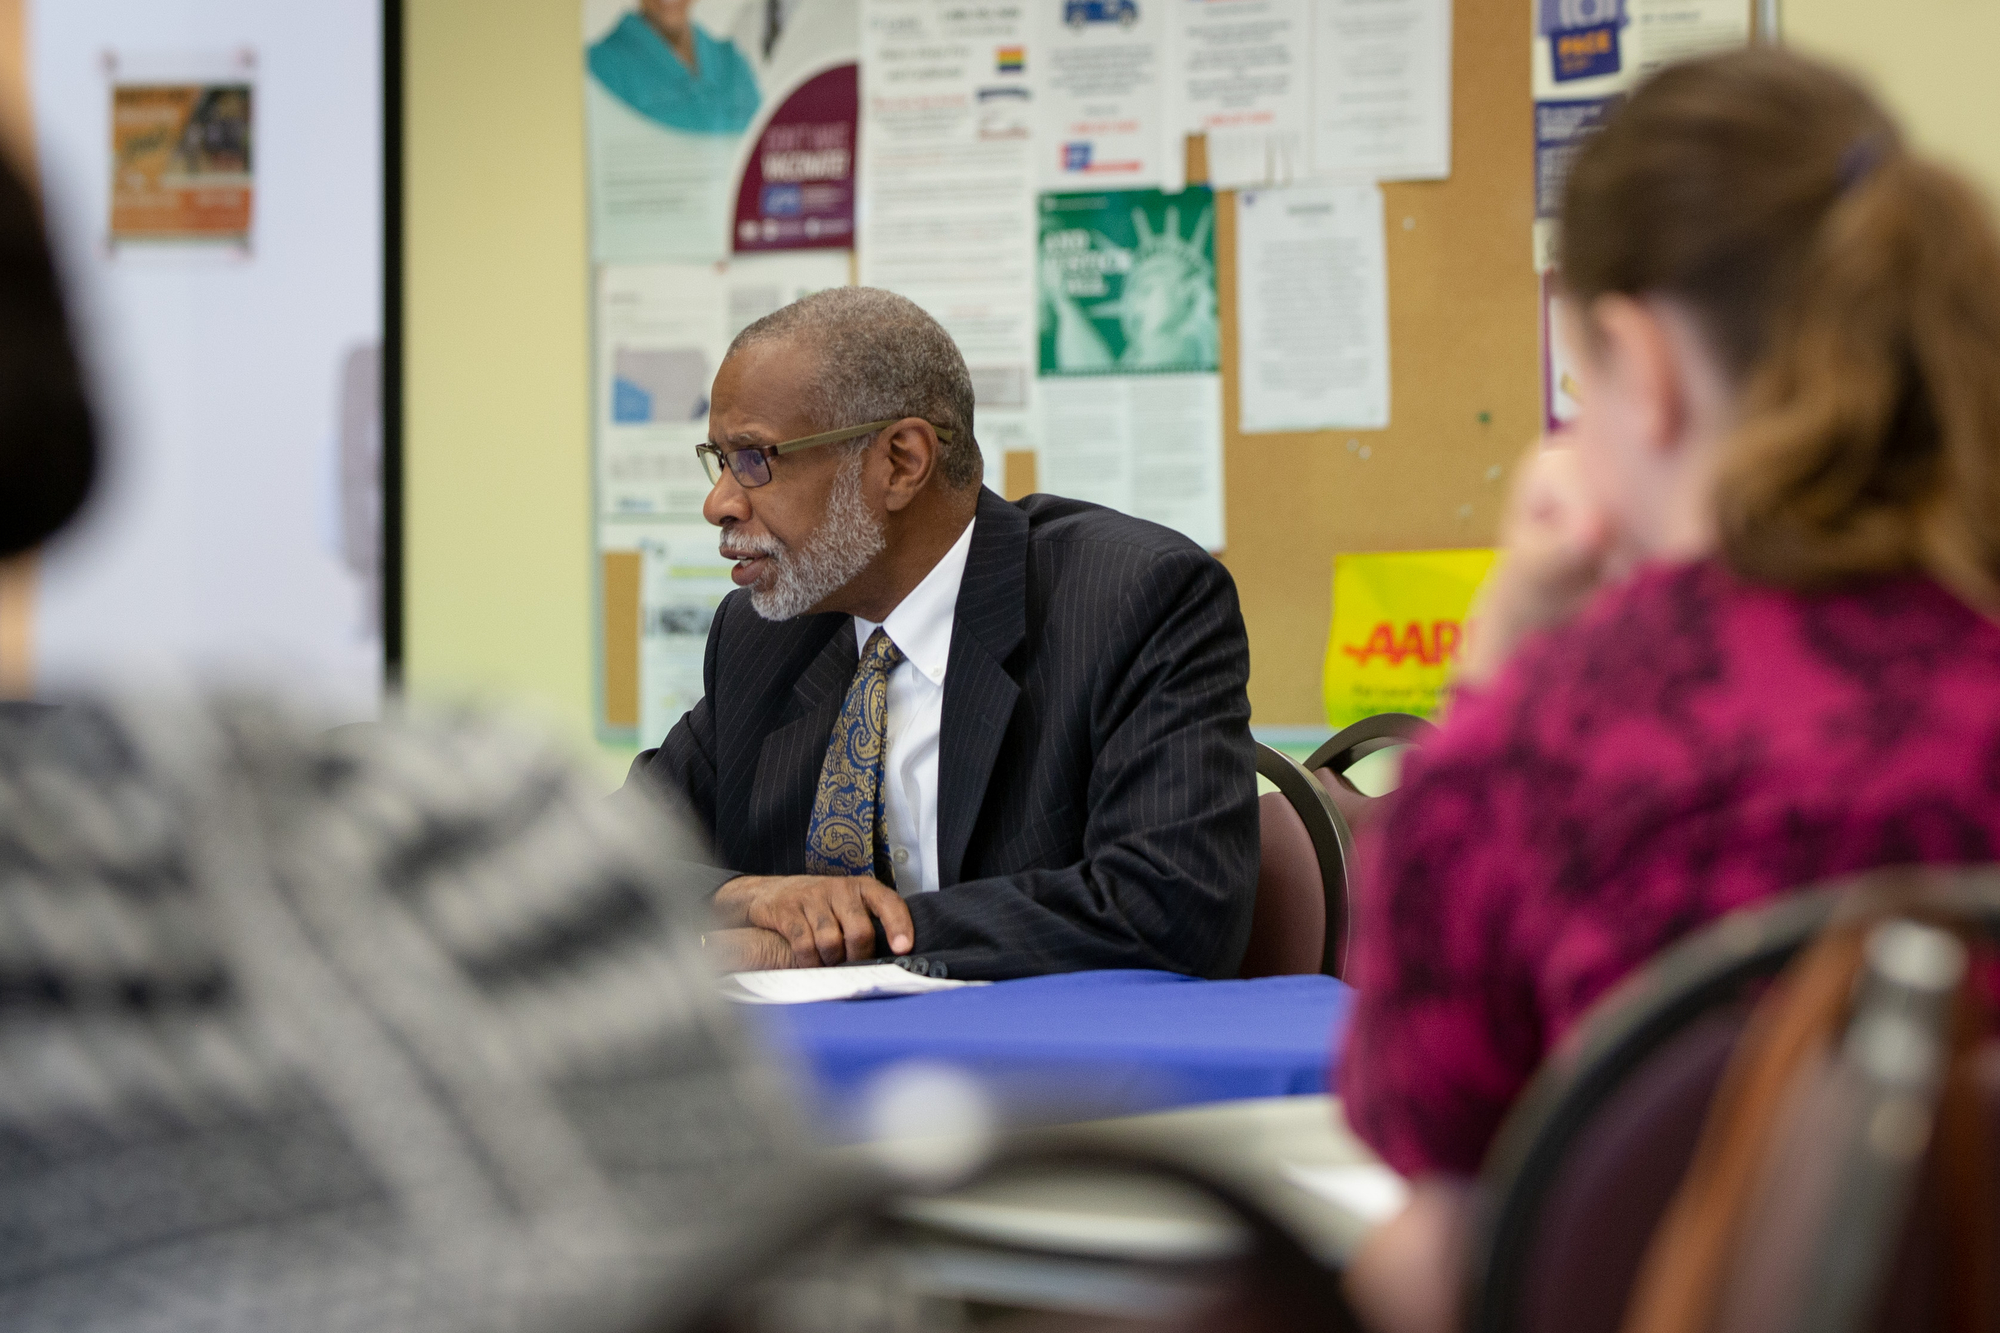 May 24, 2019: Senator Haywood makes his second stop on his 5-stop Poverty Listening Tour. City, small towns, and rural folks share the real experiences of living in poverty and the struggle to break the cycle.